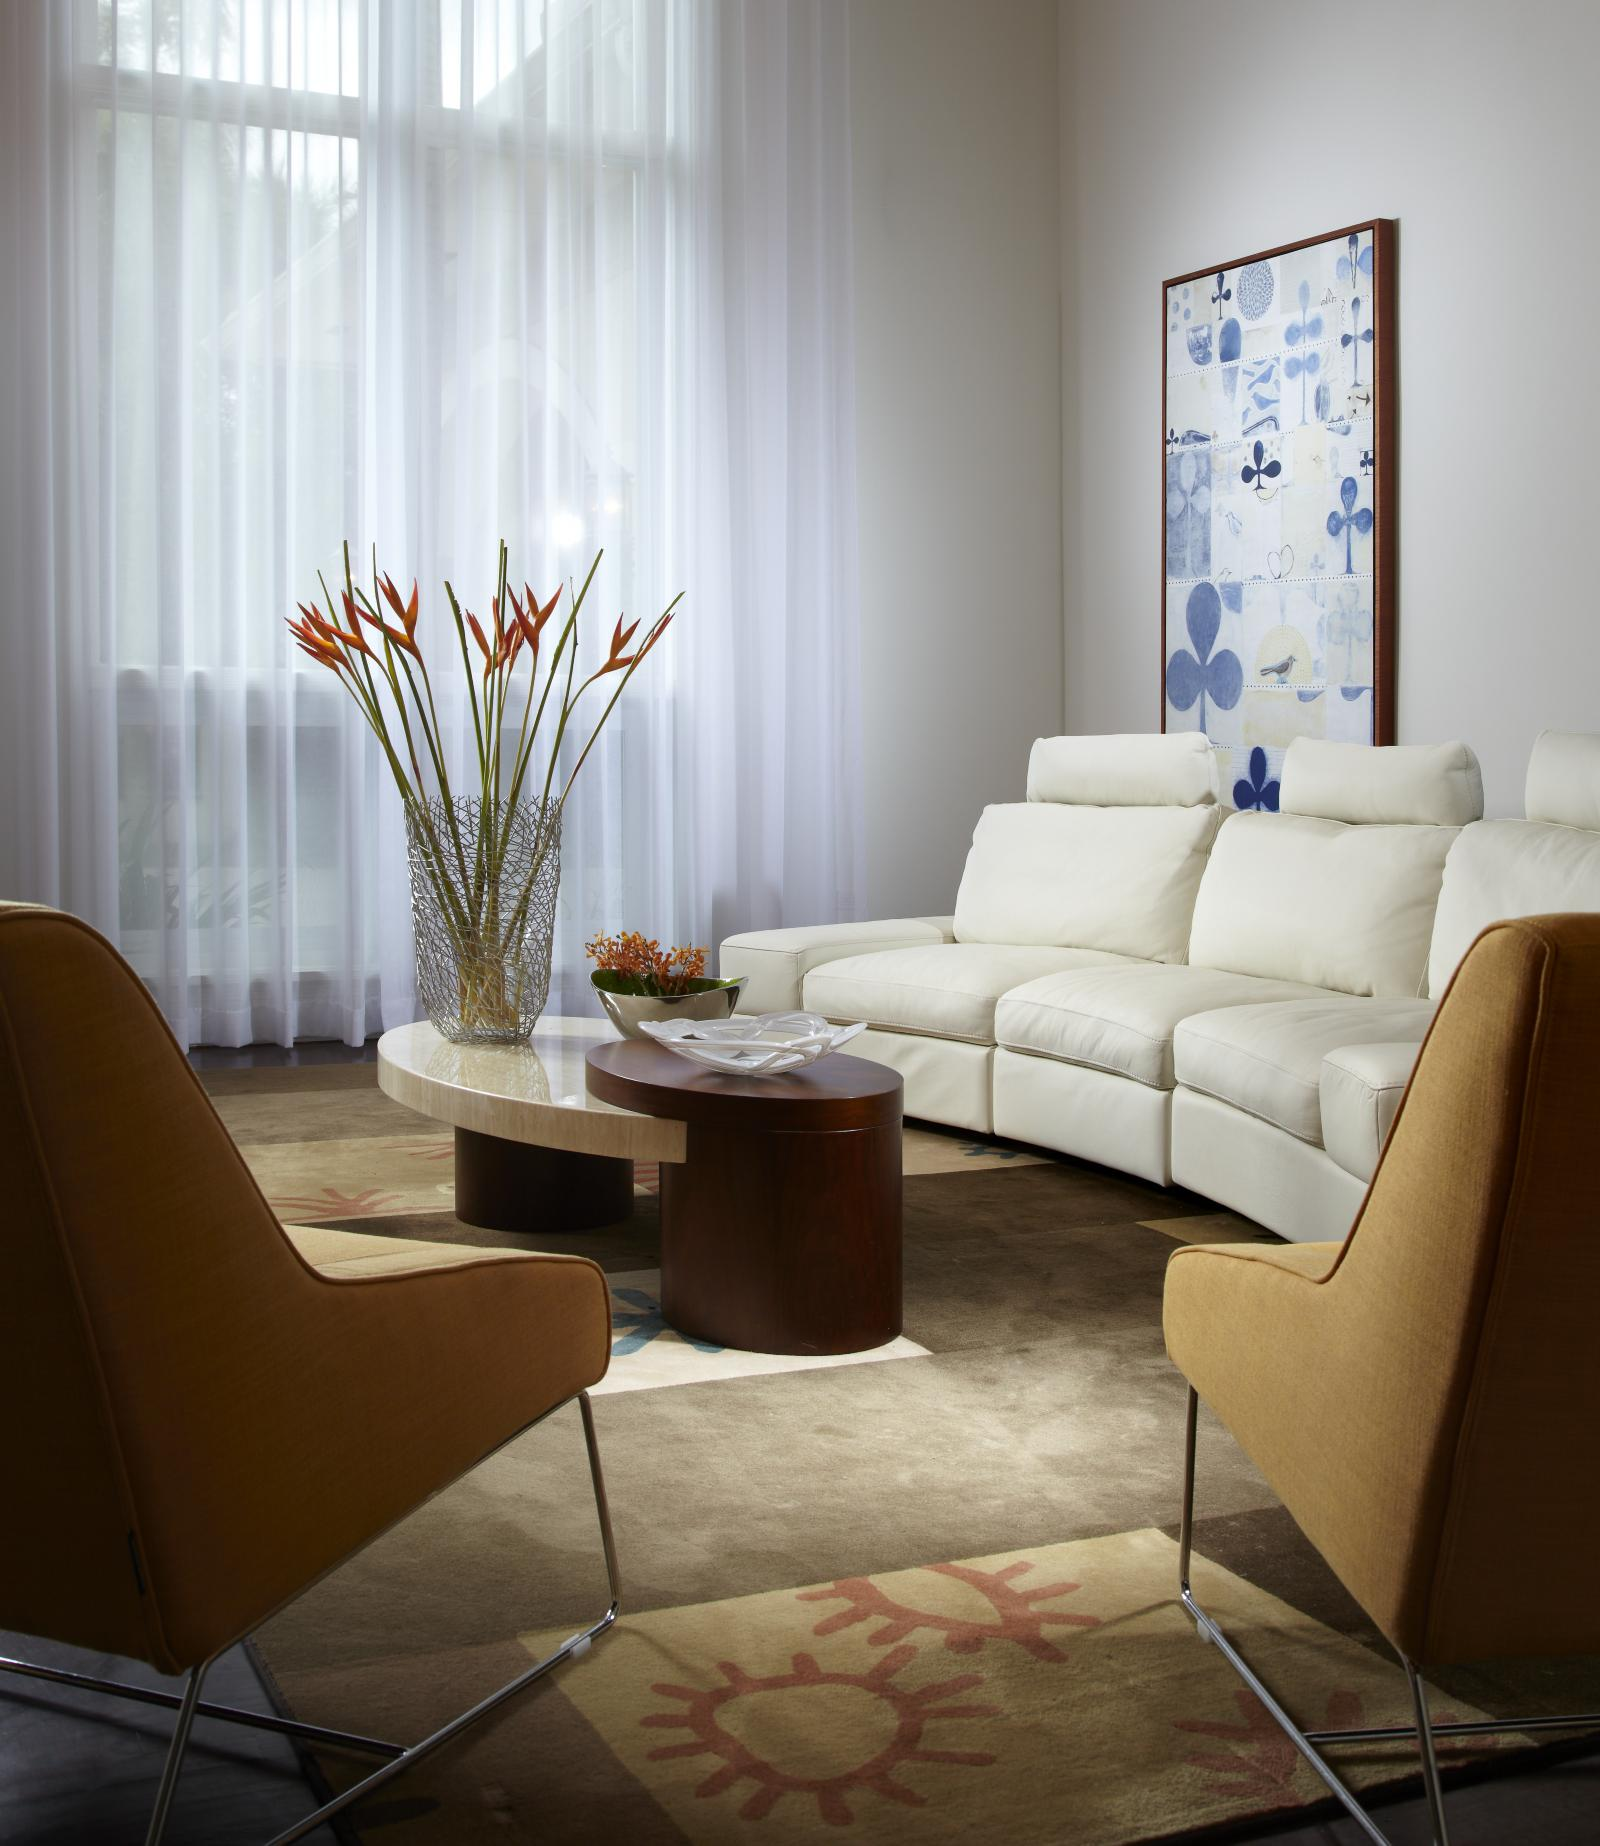 living room interior design in miami florida